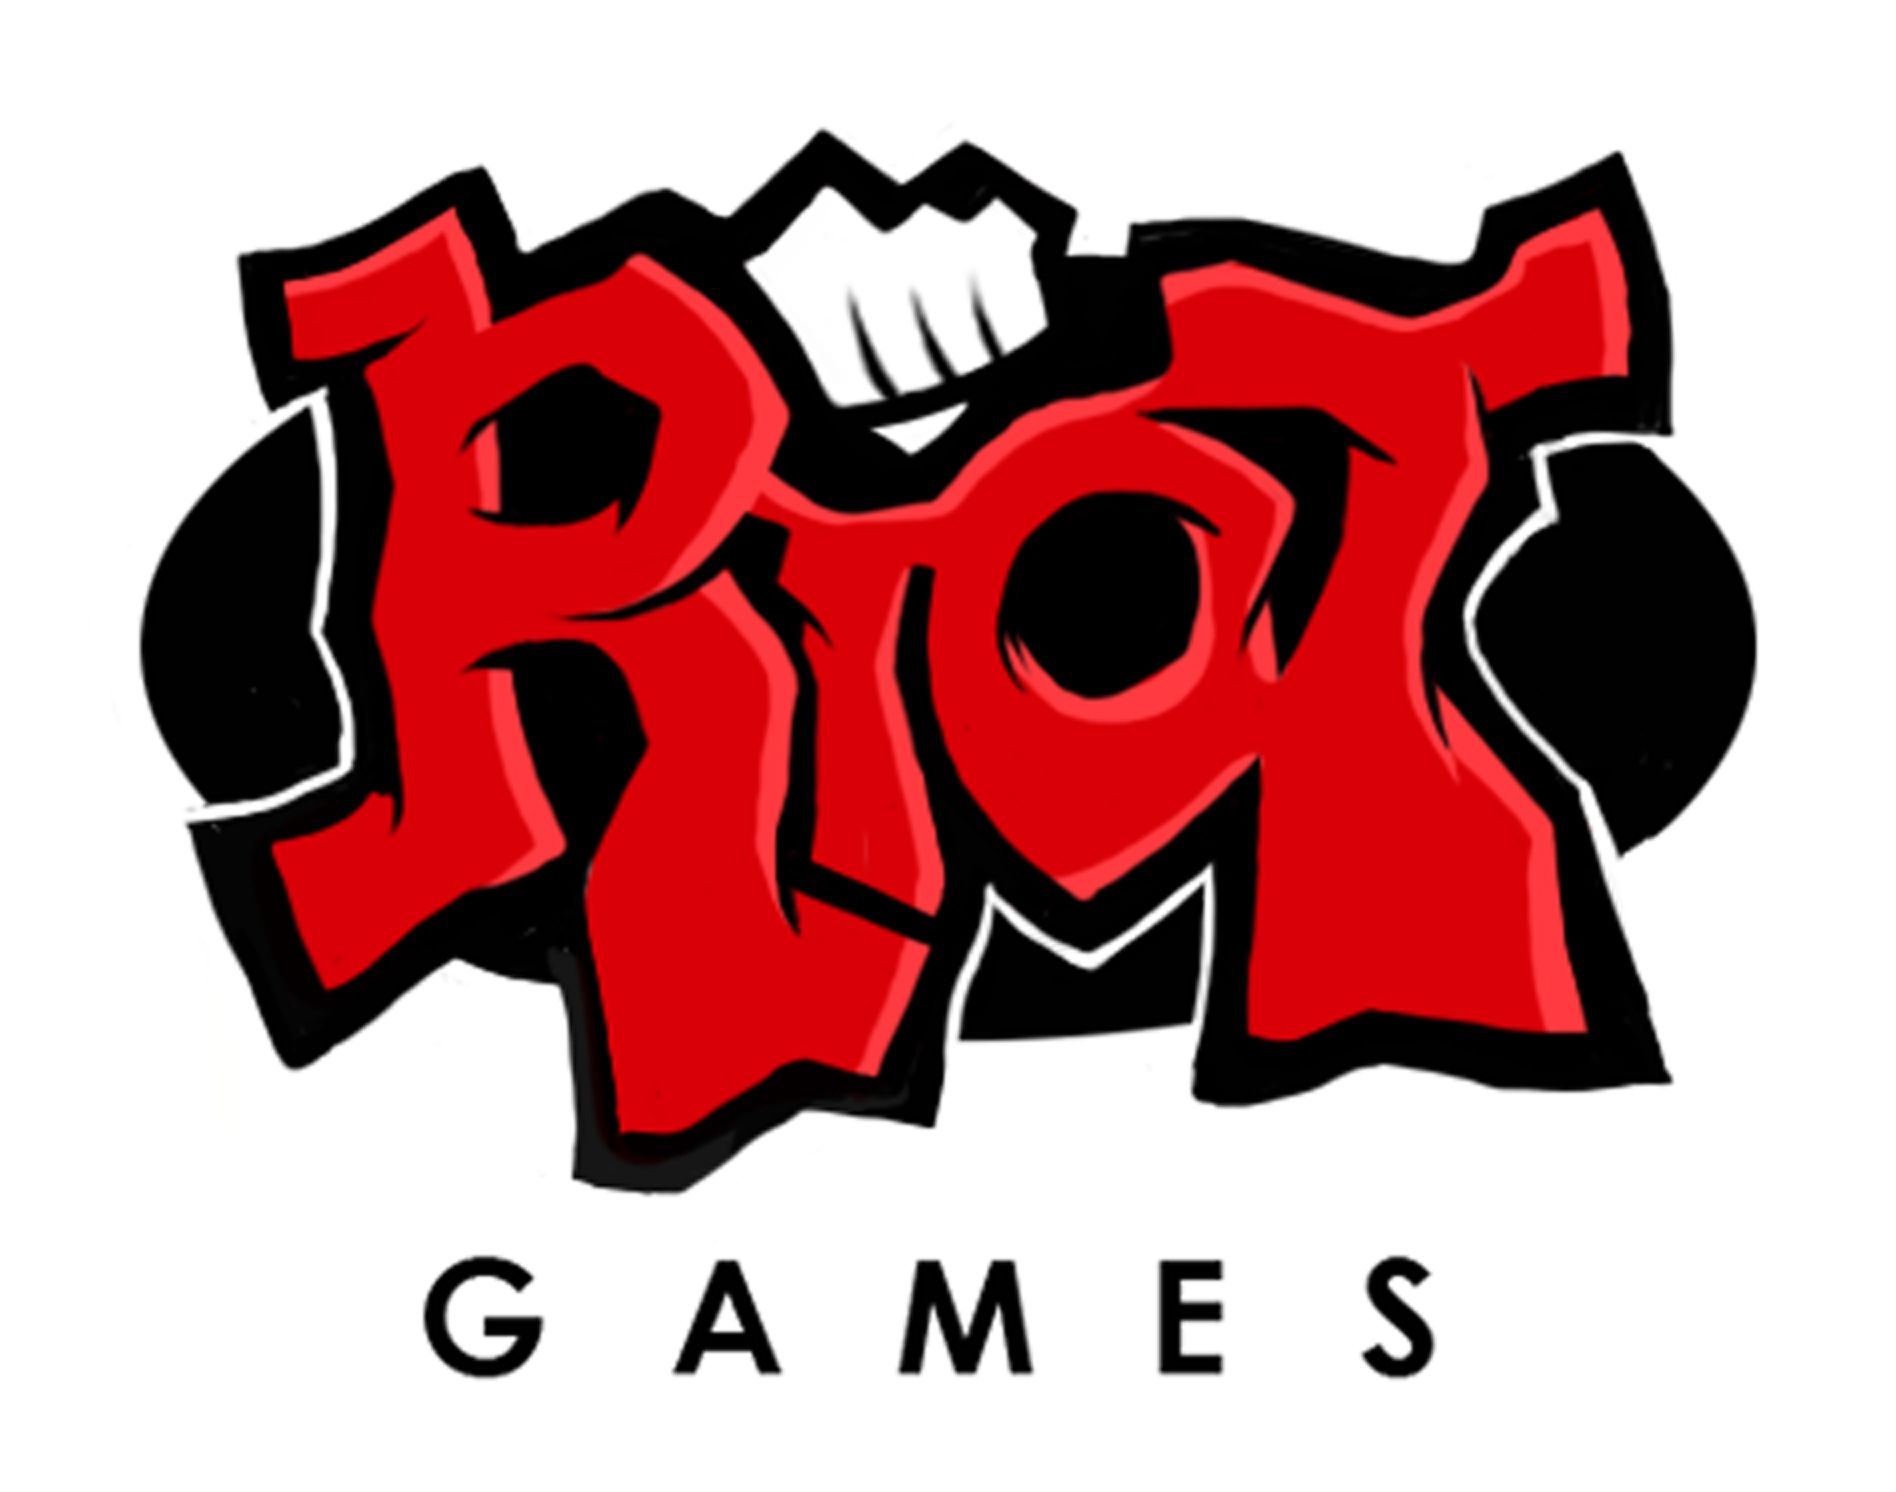 games logo Recherche Google game & logo Pinterest